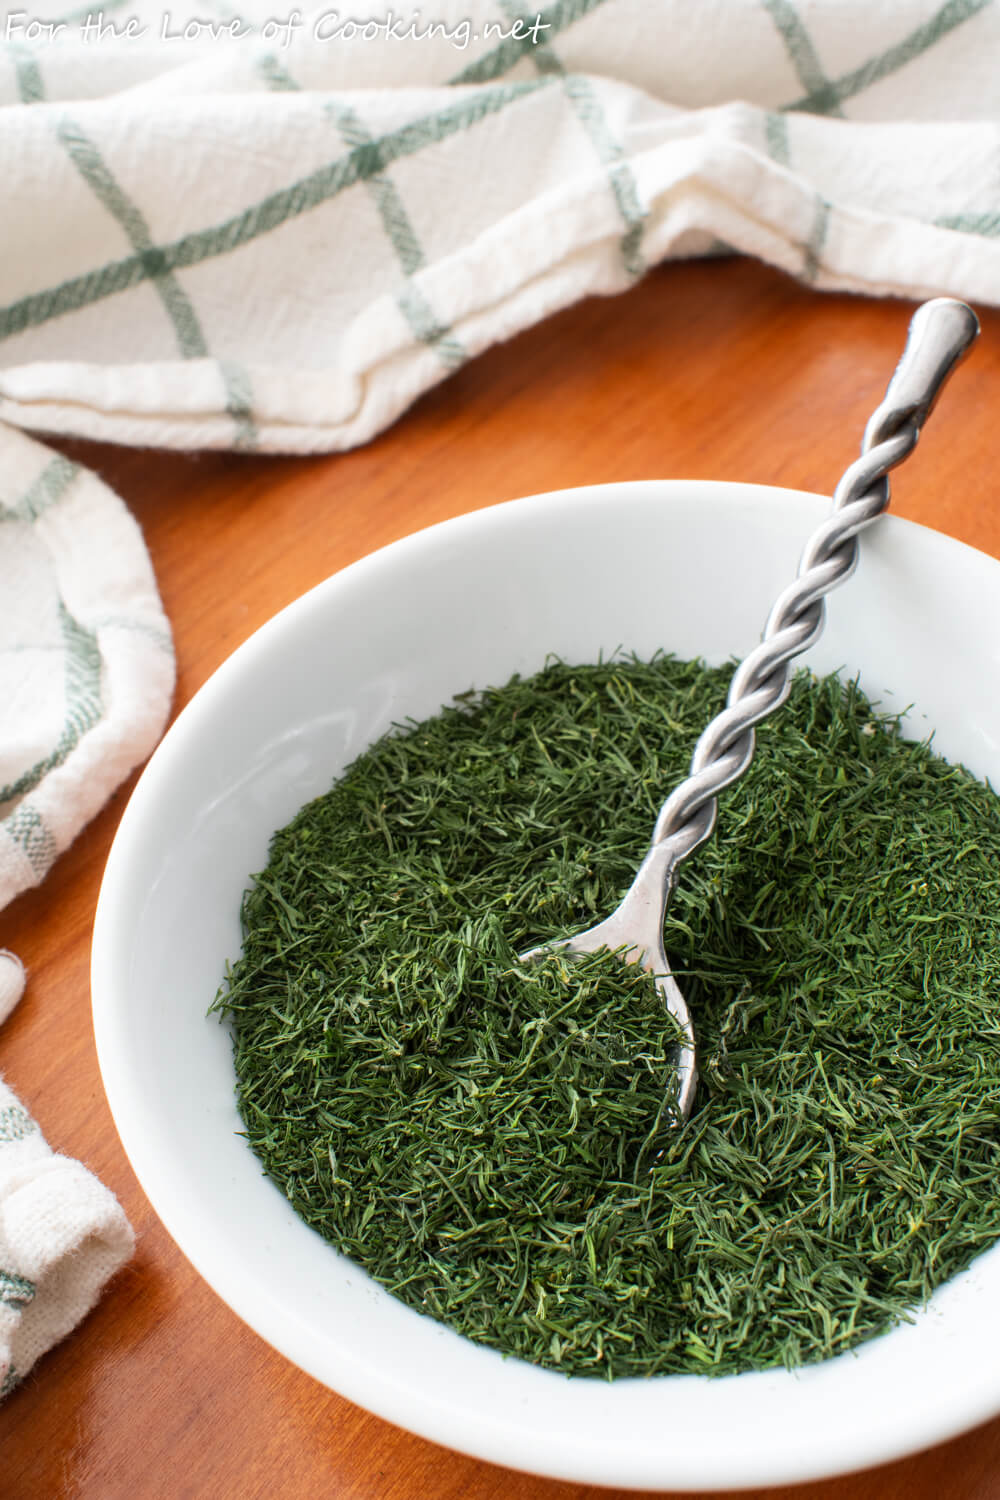 How to Dry Fresh Dill   For the Love of Cooking